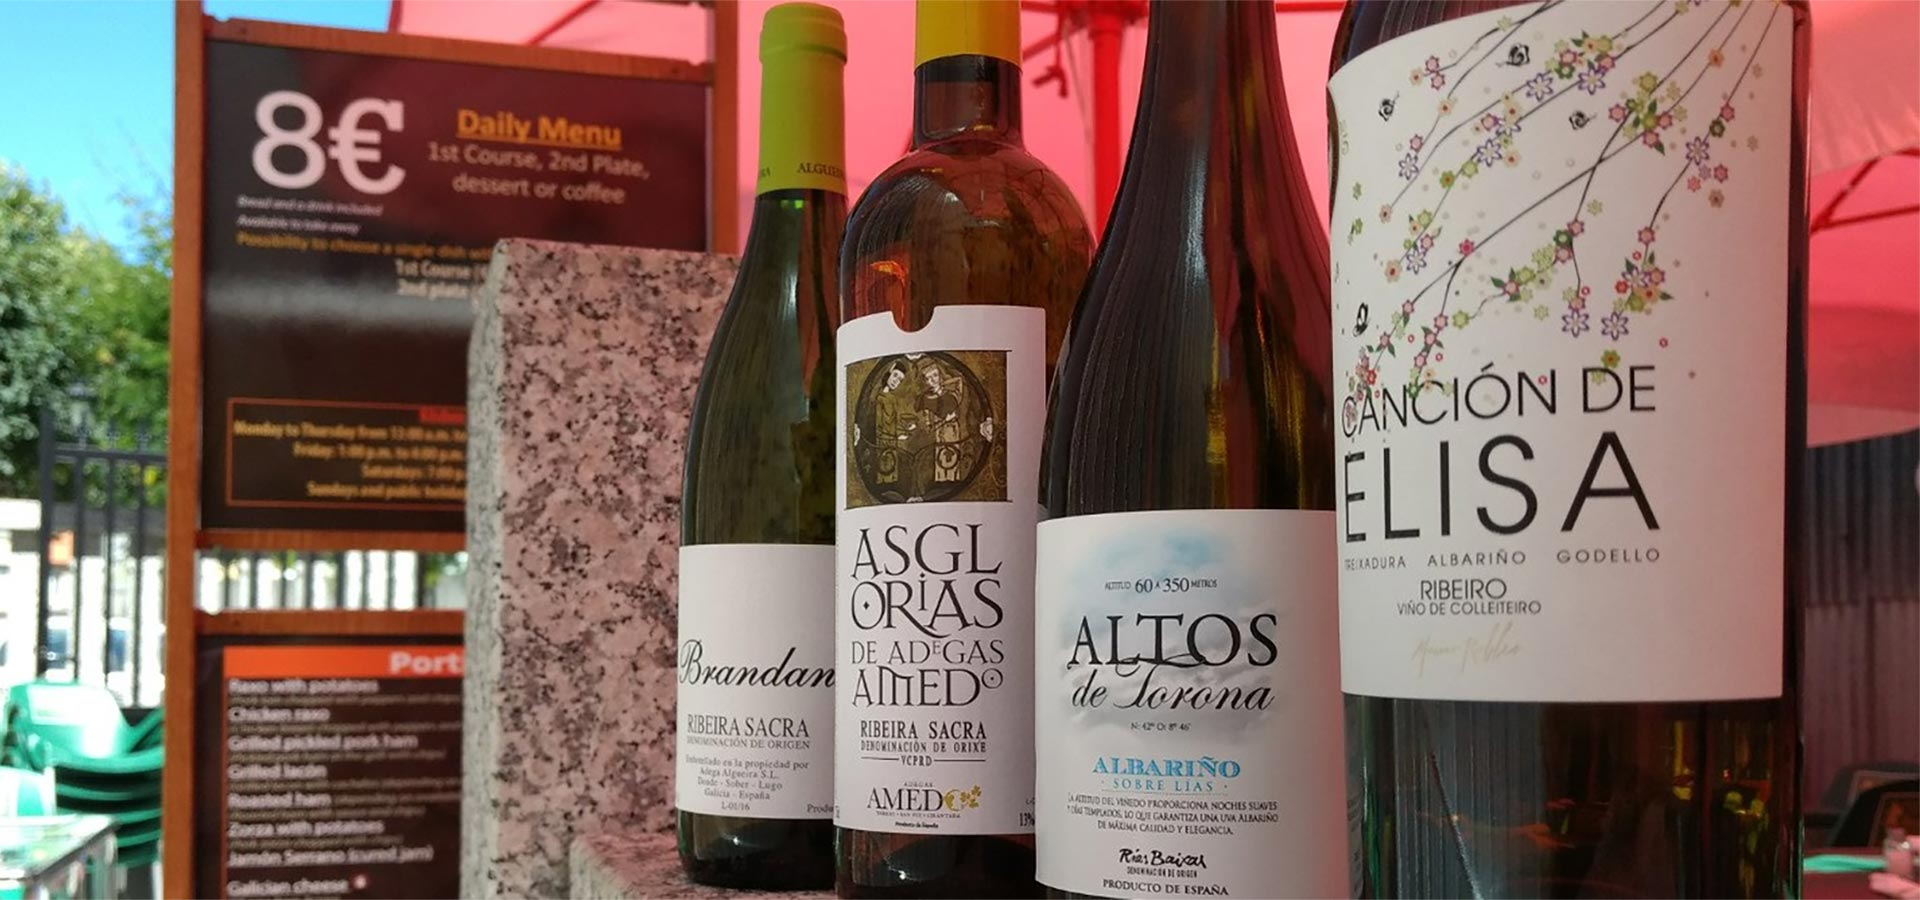 Galician wines